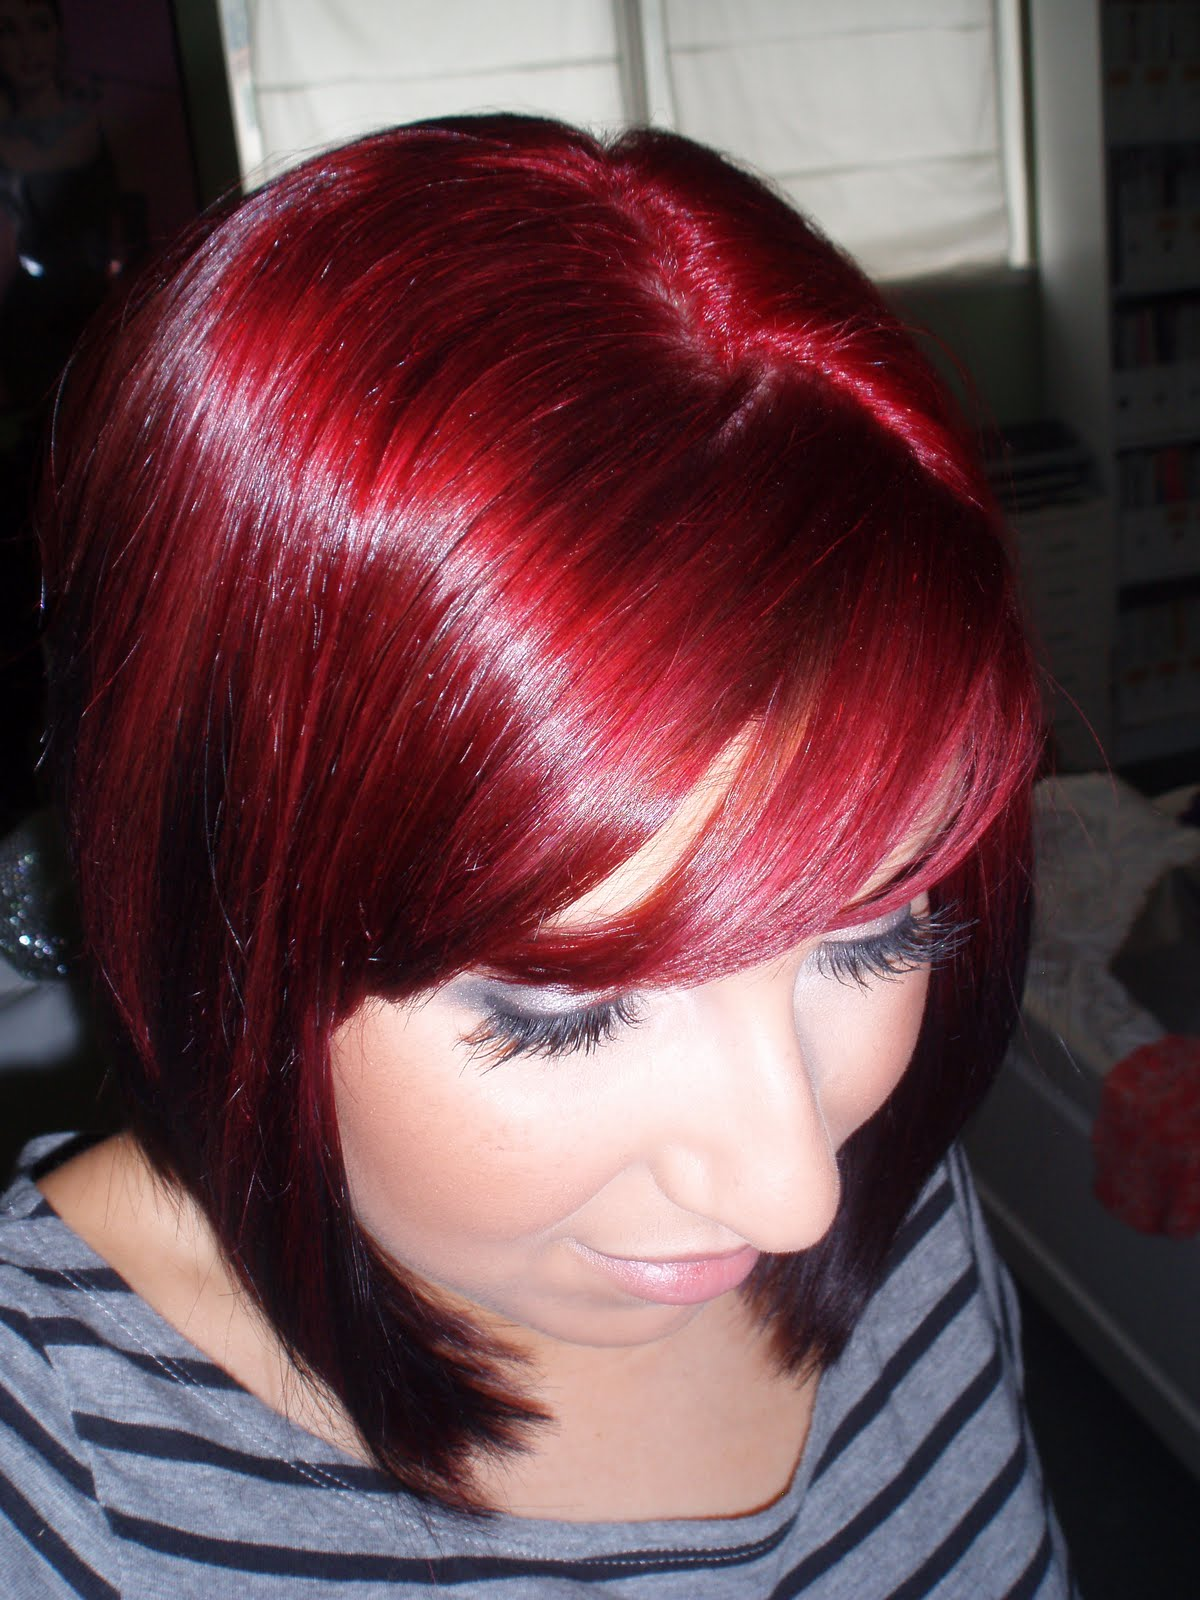 Loreal Hicolor Red Hair Color